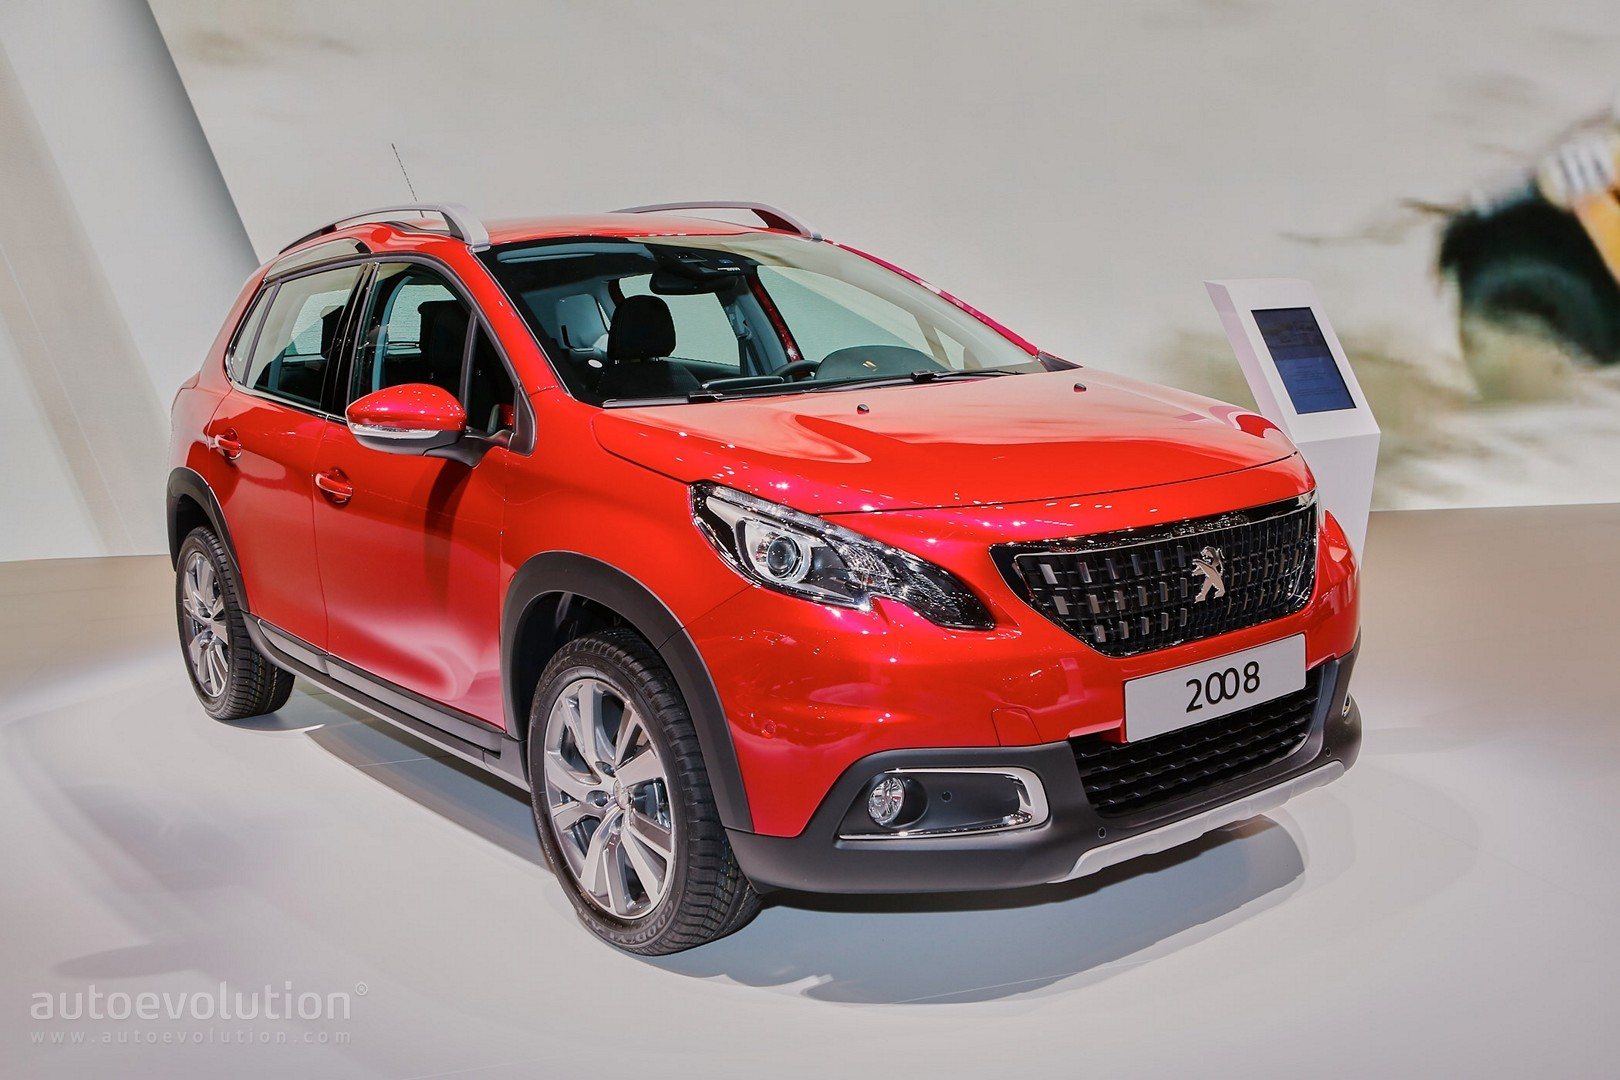 2016 peugeot 2008 facelift joins opel mokka x for geneva. Black Bedroom Furniture Sets. Home Design Ideas